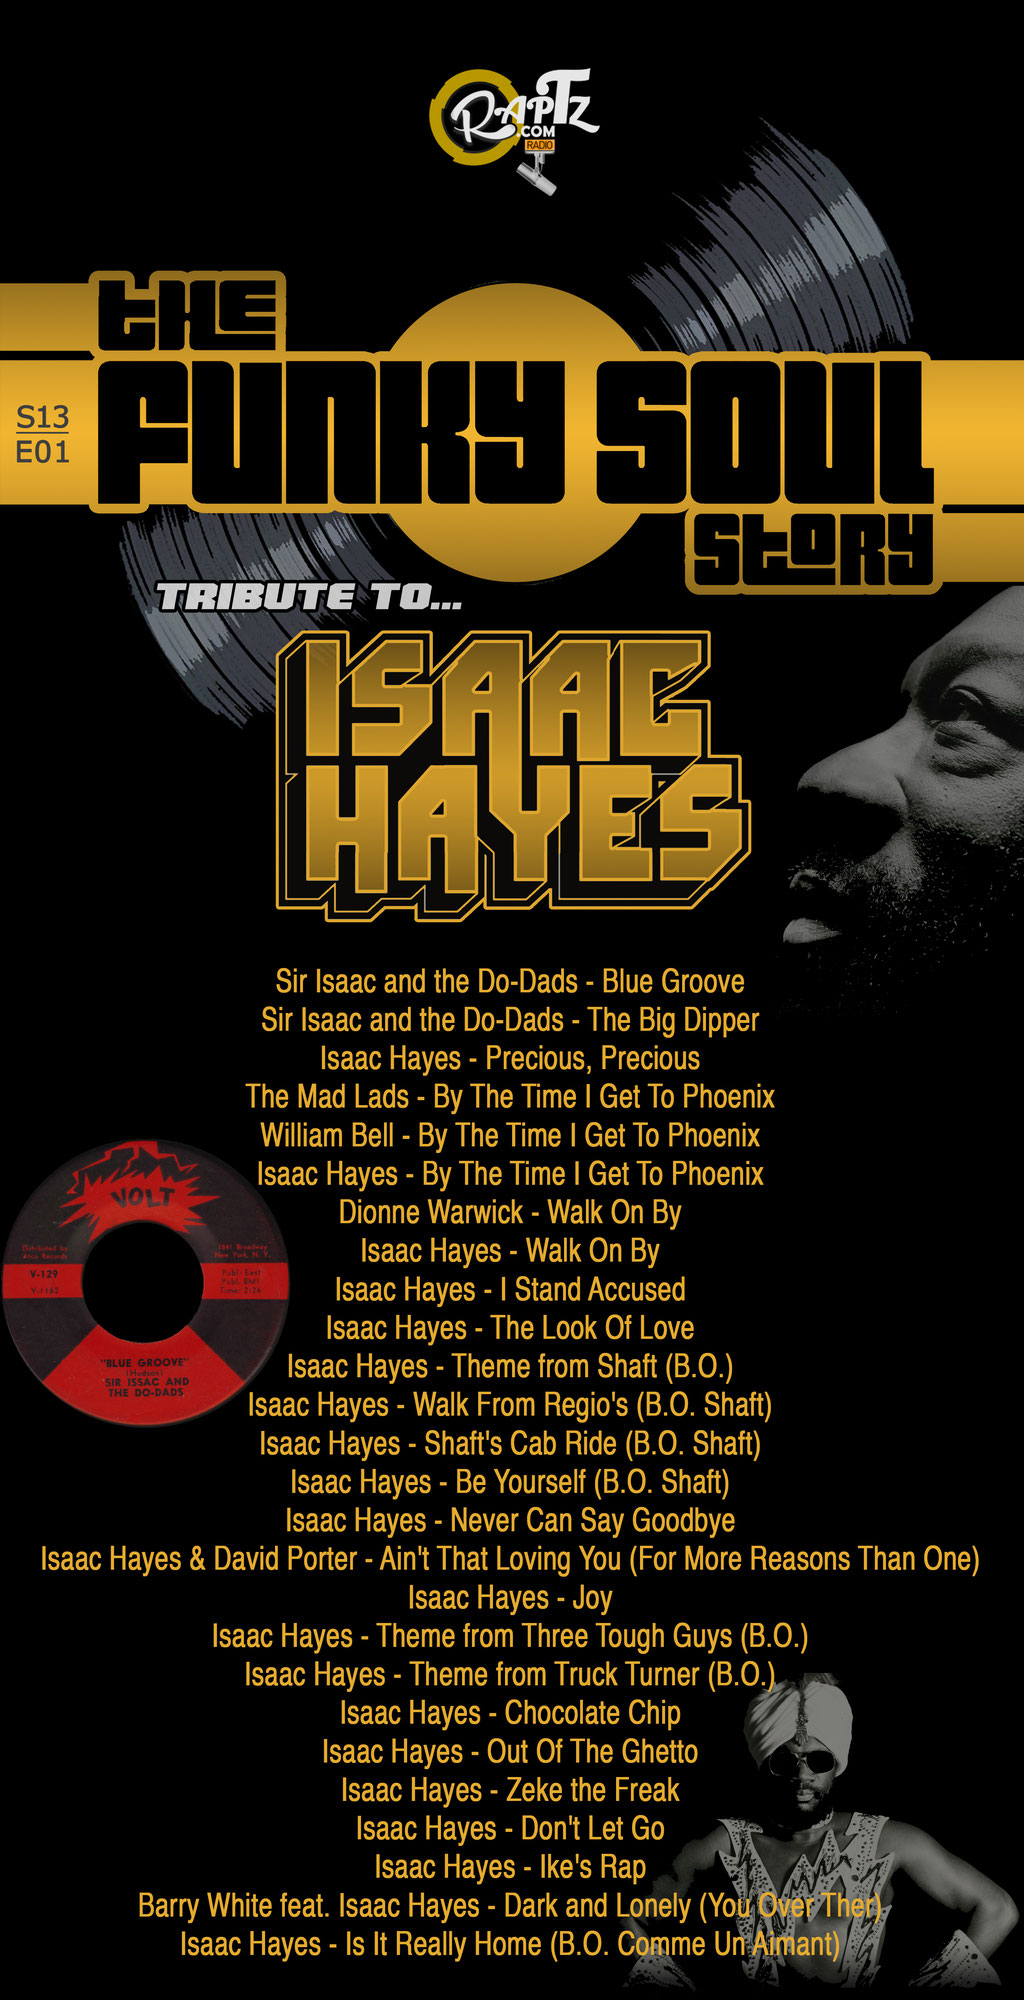 radioshow 'the Funky Soul story' S13/E01 - Tribute To Isaac Hayes (september 2018)